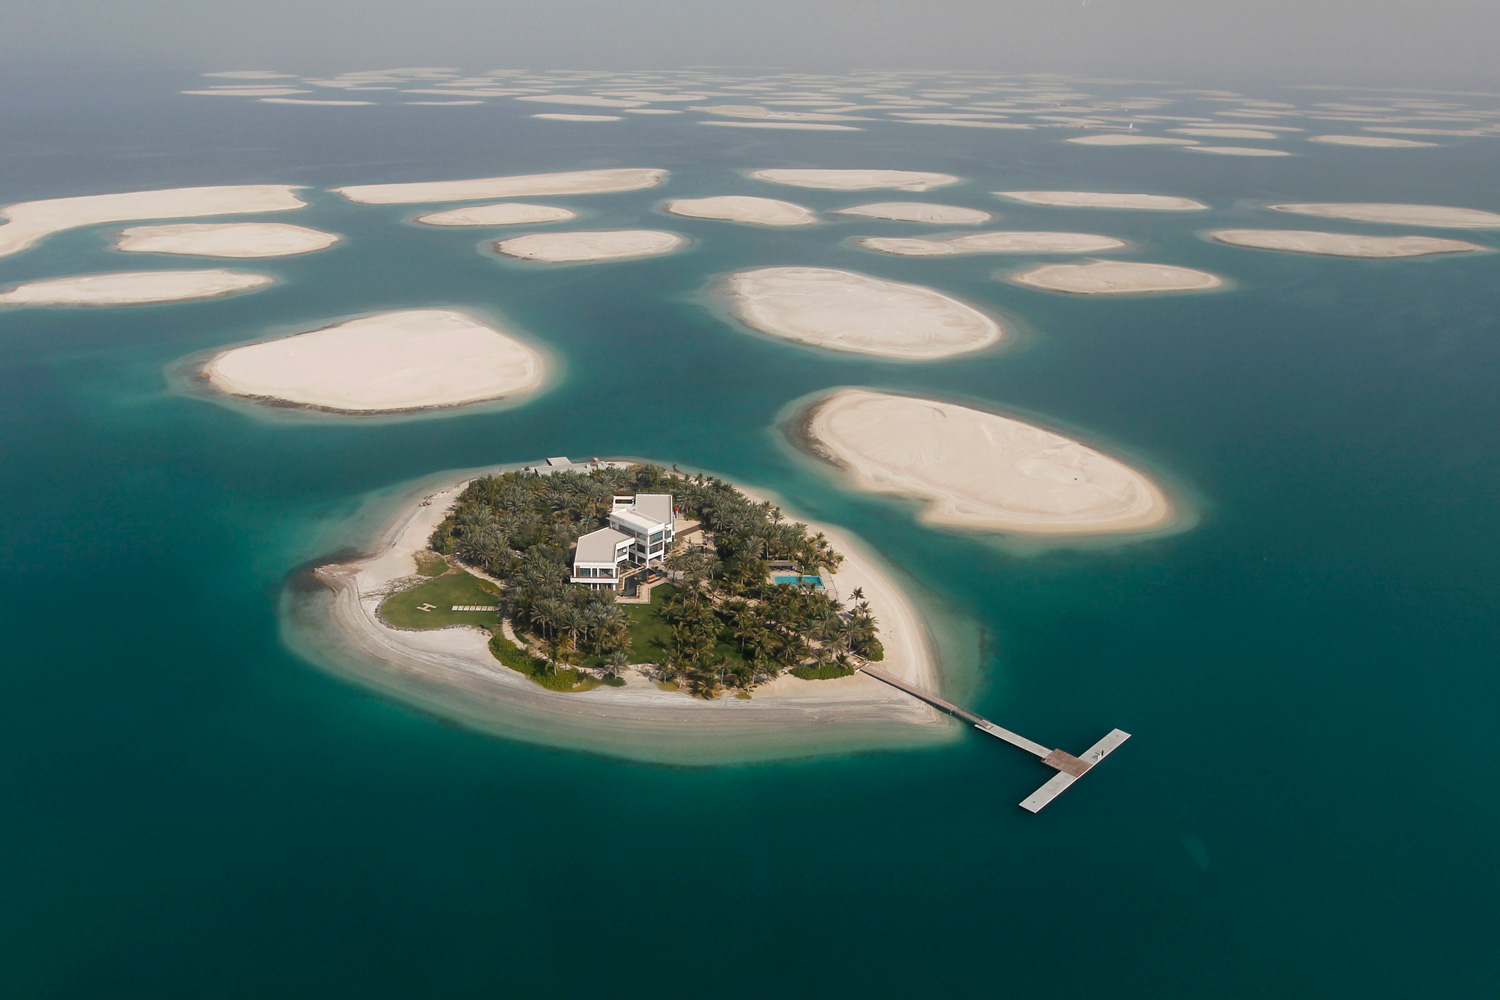 January 7, 2012. A development is seen on one of the islands of The World Islands project in Dubai. The World Islands is located approximately 4 km (2.5 miles) off the coast of Jumeirah. The collection of man-made islands are shaped into the continents of the world, and will consist of 300 small private artificial islands divided into four categories: private homes, estate homes, dream resorts, and community islands, according to the development company Nakheel Properties Group.